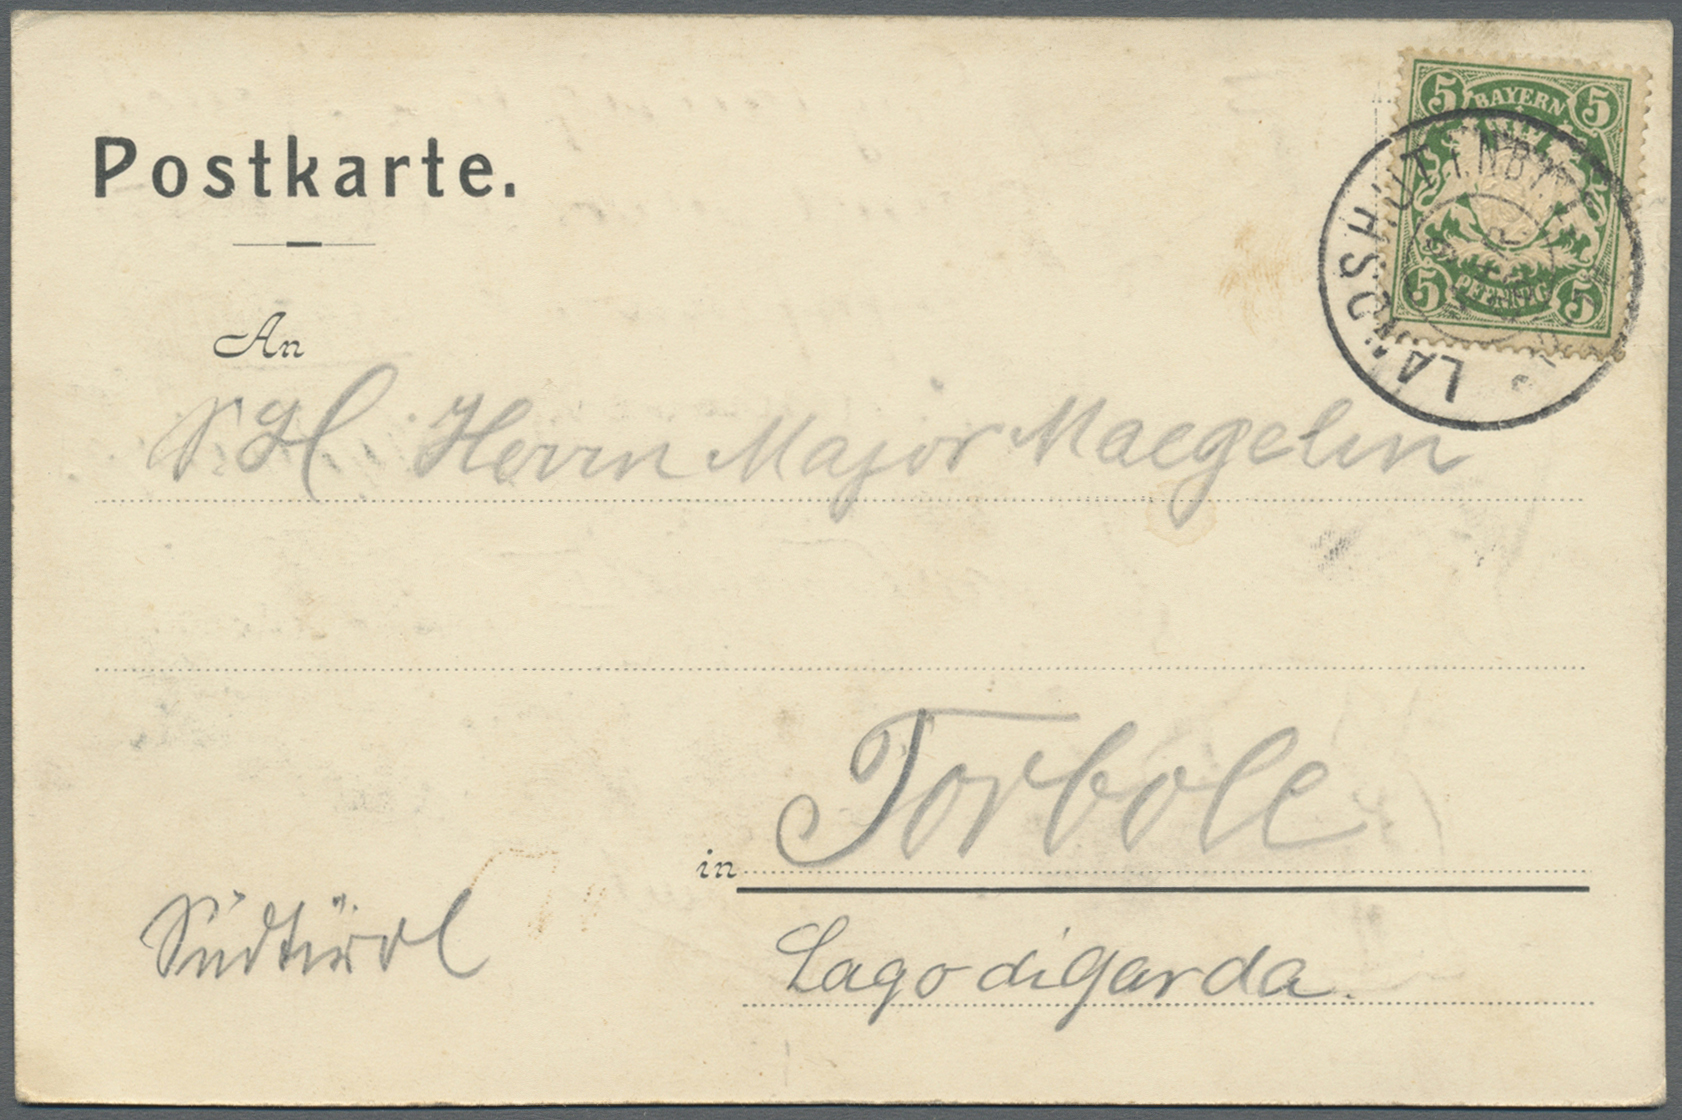 Lot 21215 - ansichtskarten: motive / thematics  -  Auktionshaus Christoph Gärtner GmbH & Co. KG Auction #40 Germany, Picture Post Cards, Collections Overseas, Thematics